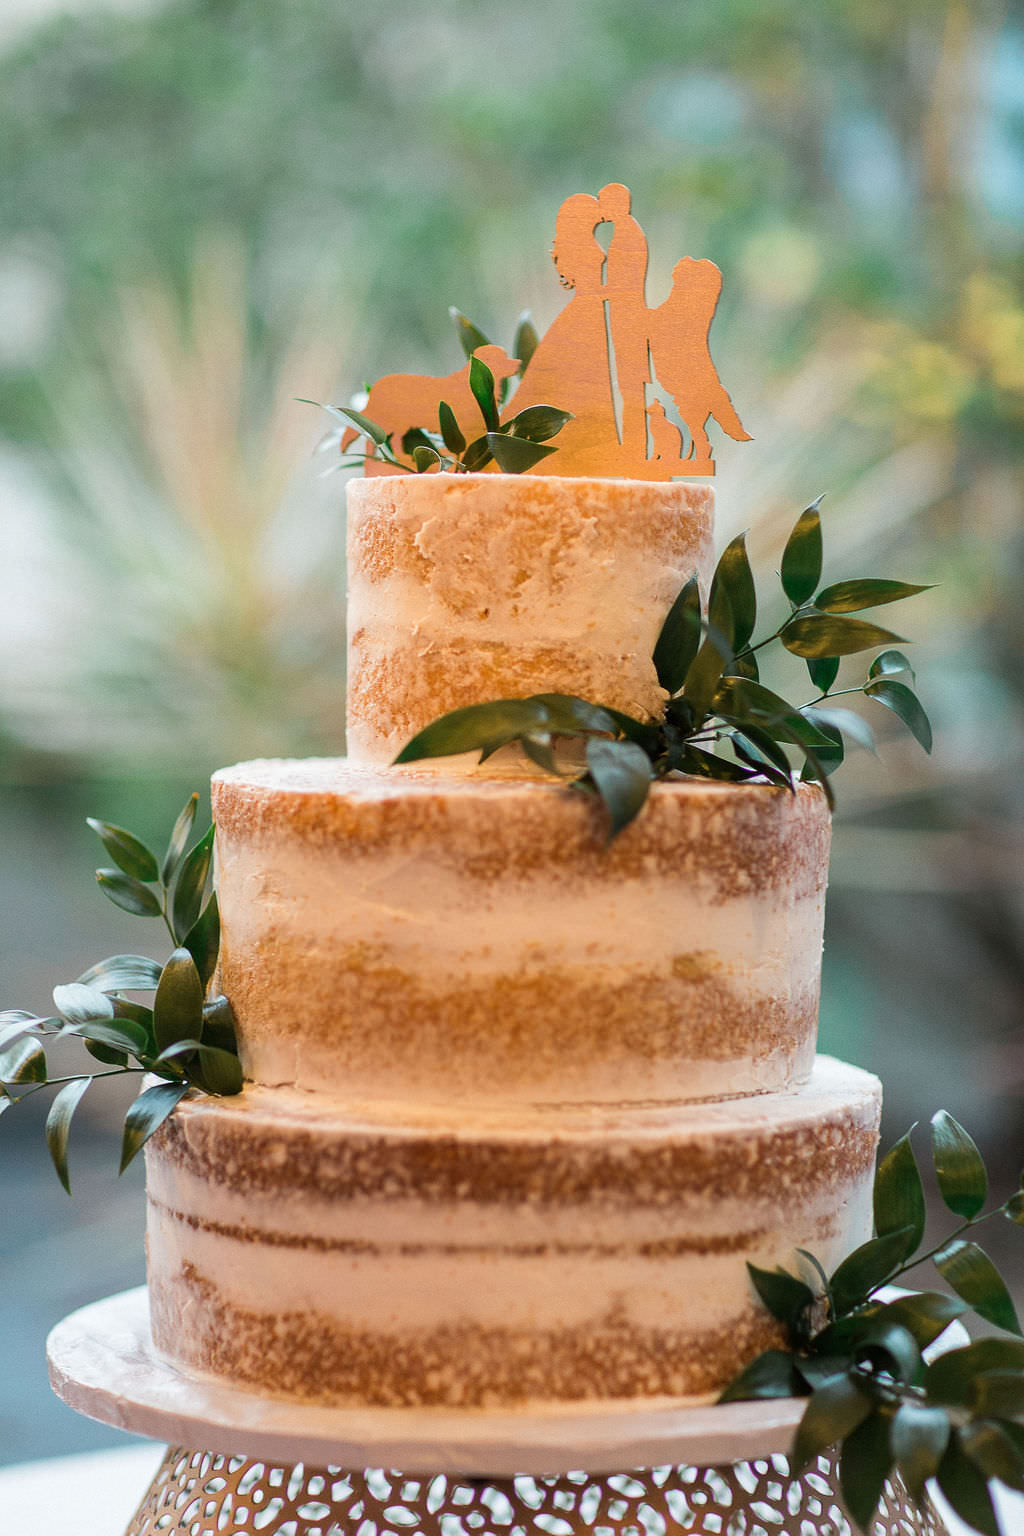 Rustic Semi Naked Three Tier Wedding Cake Decorated with Eucalyptus and Custom Wooden Cake Topper